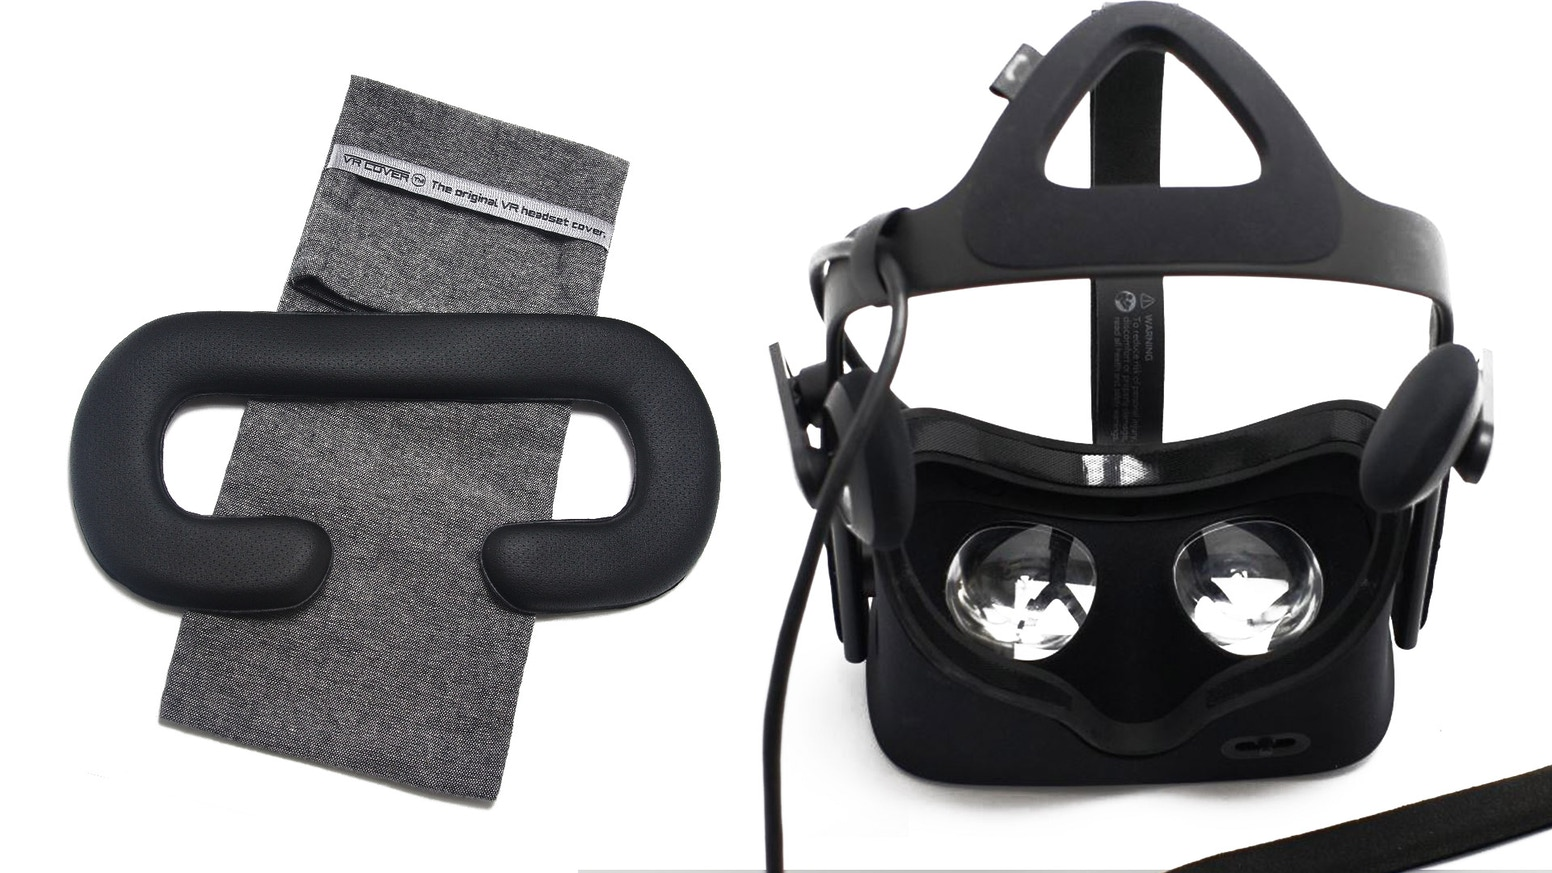 Two new facial interfaces for your Oculus Rift. One for face foam replacements and one that is bigger for using the Rift with eyewear.